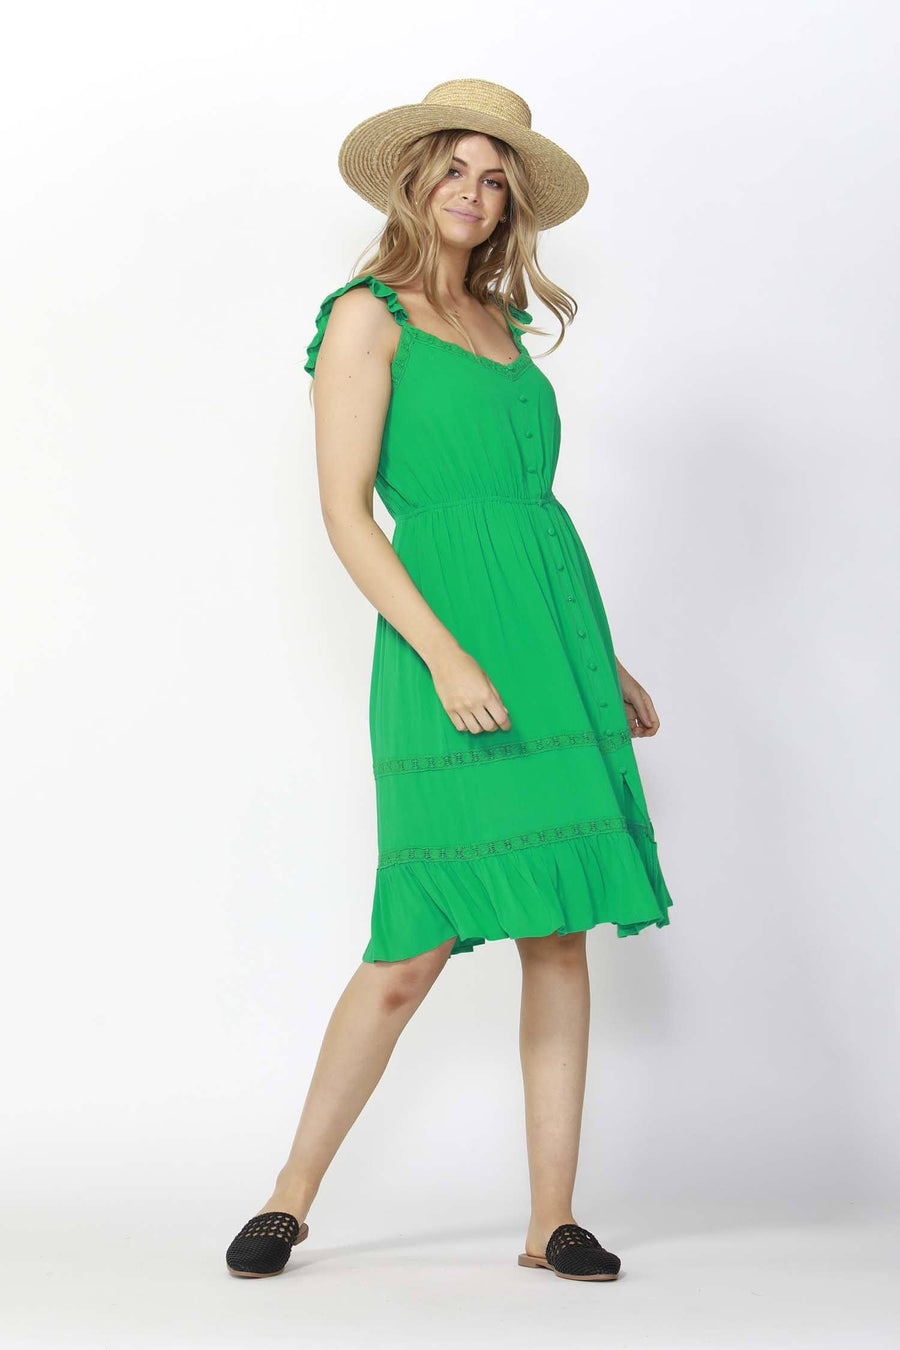 Honeymoon Lace Dress in Plam